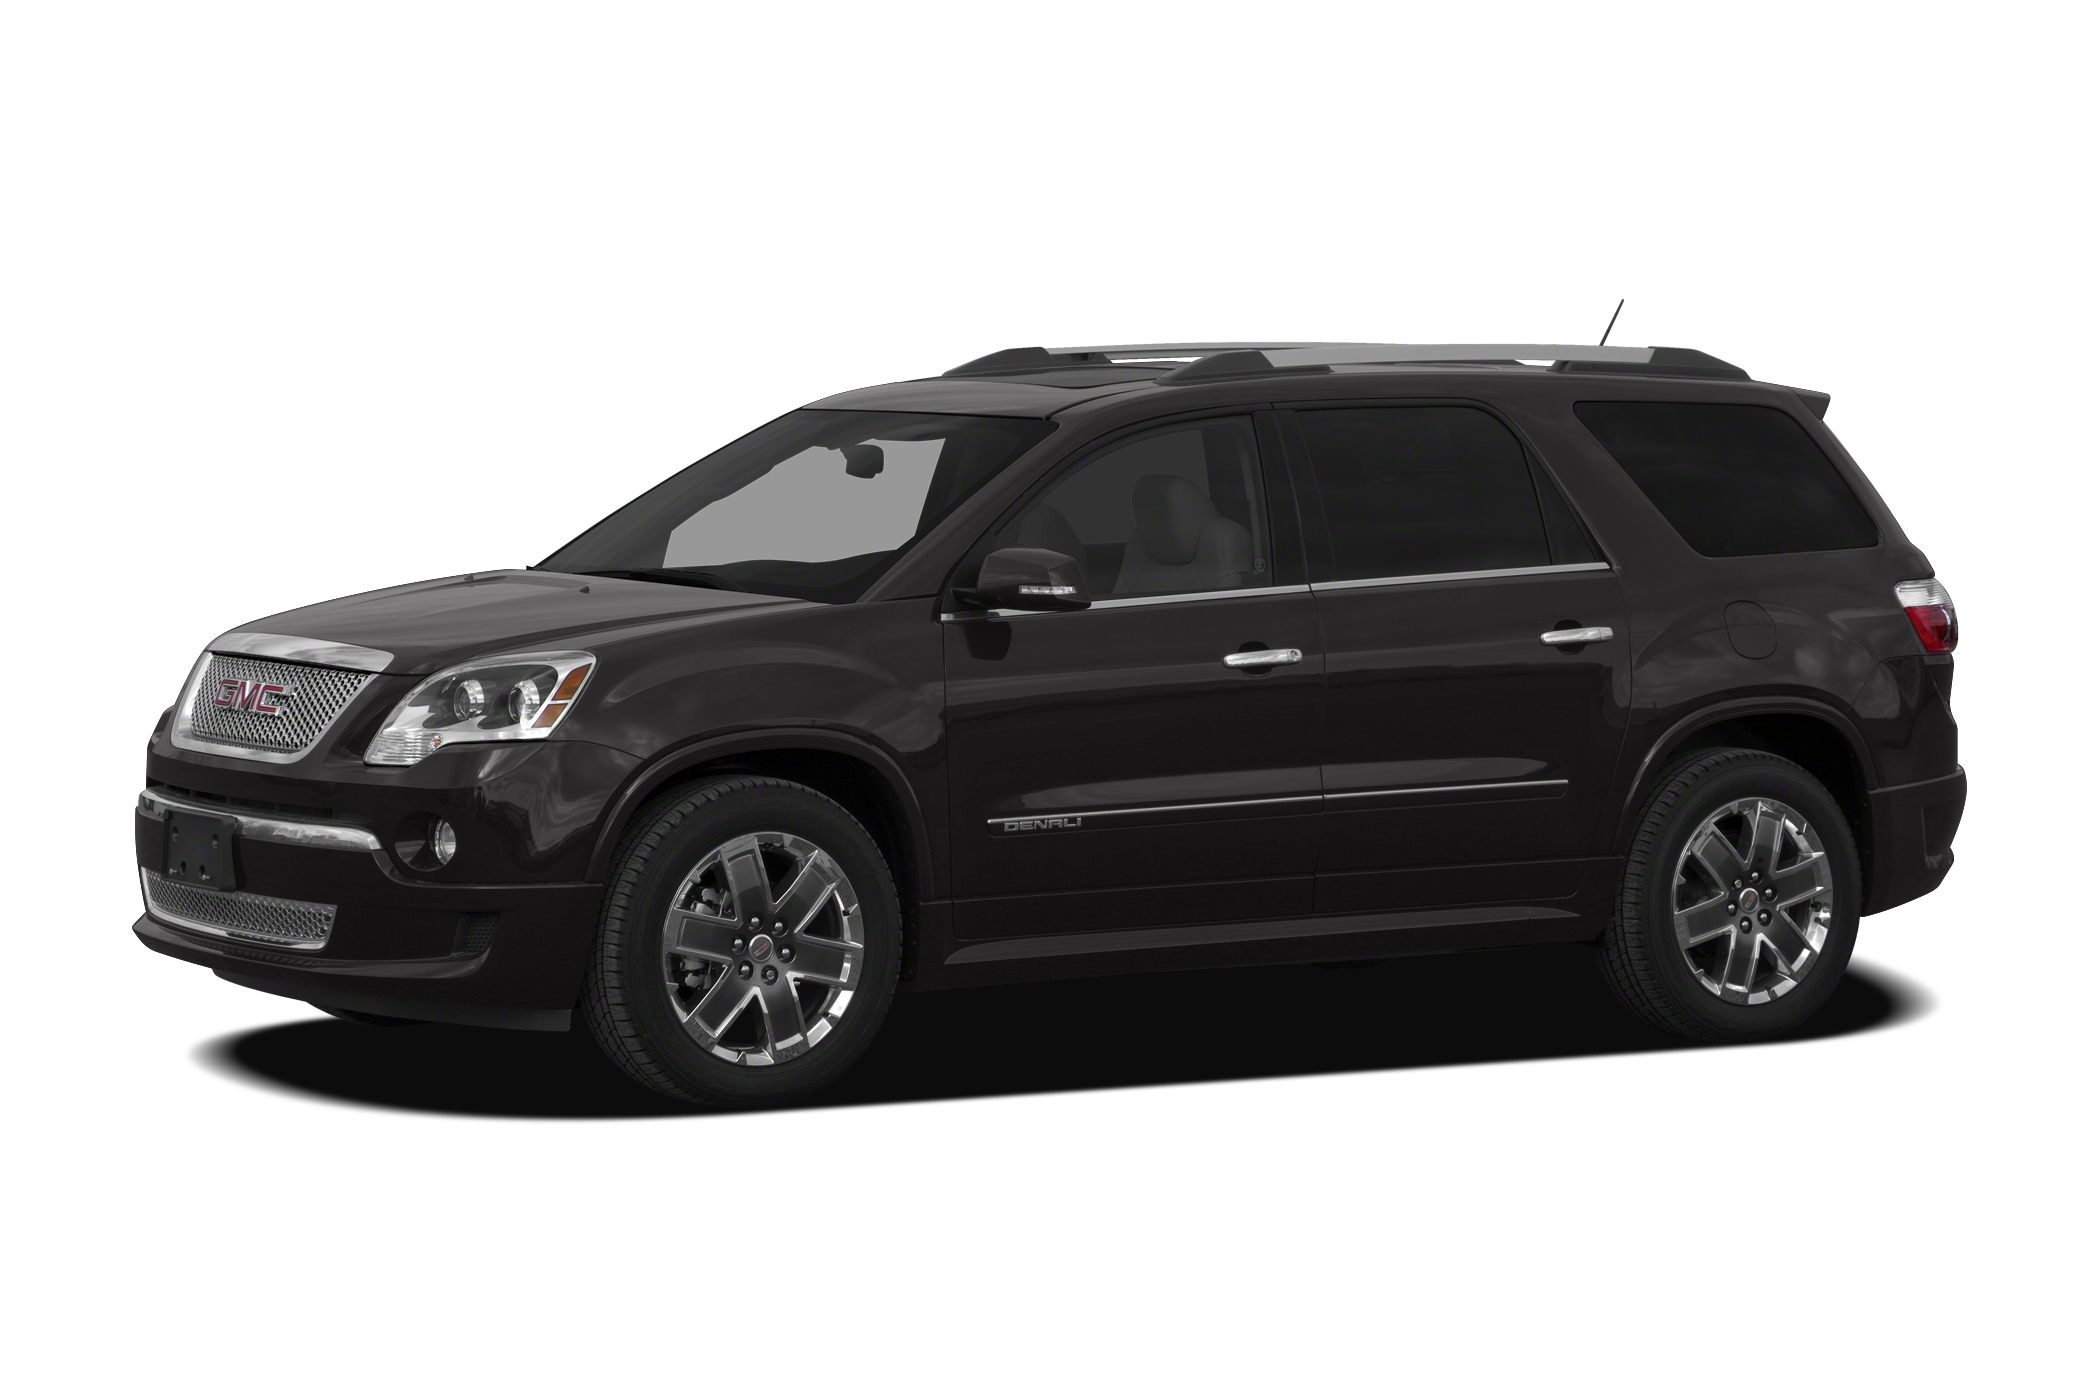 2011 GMC Acadia Denali SUV for sale in Jefferson City for $32,840 with 39,252 miles.